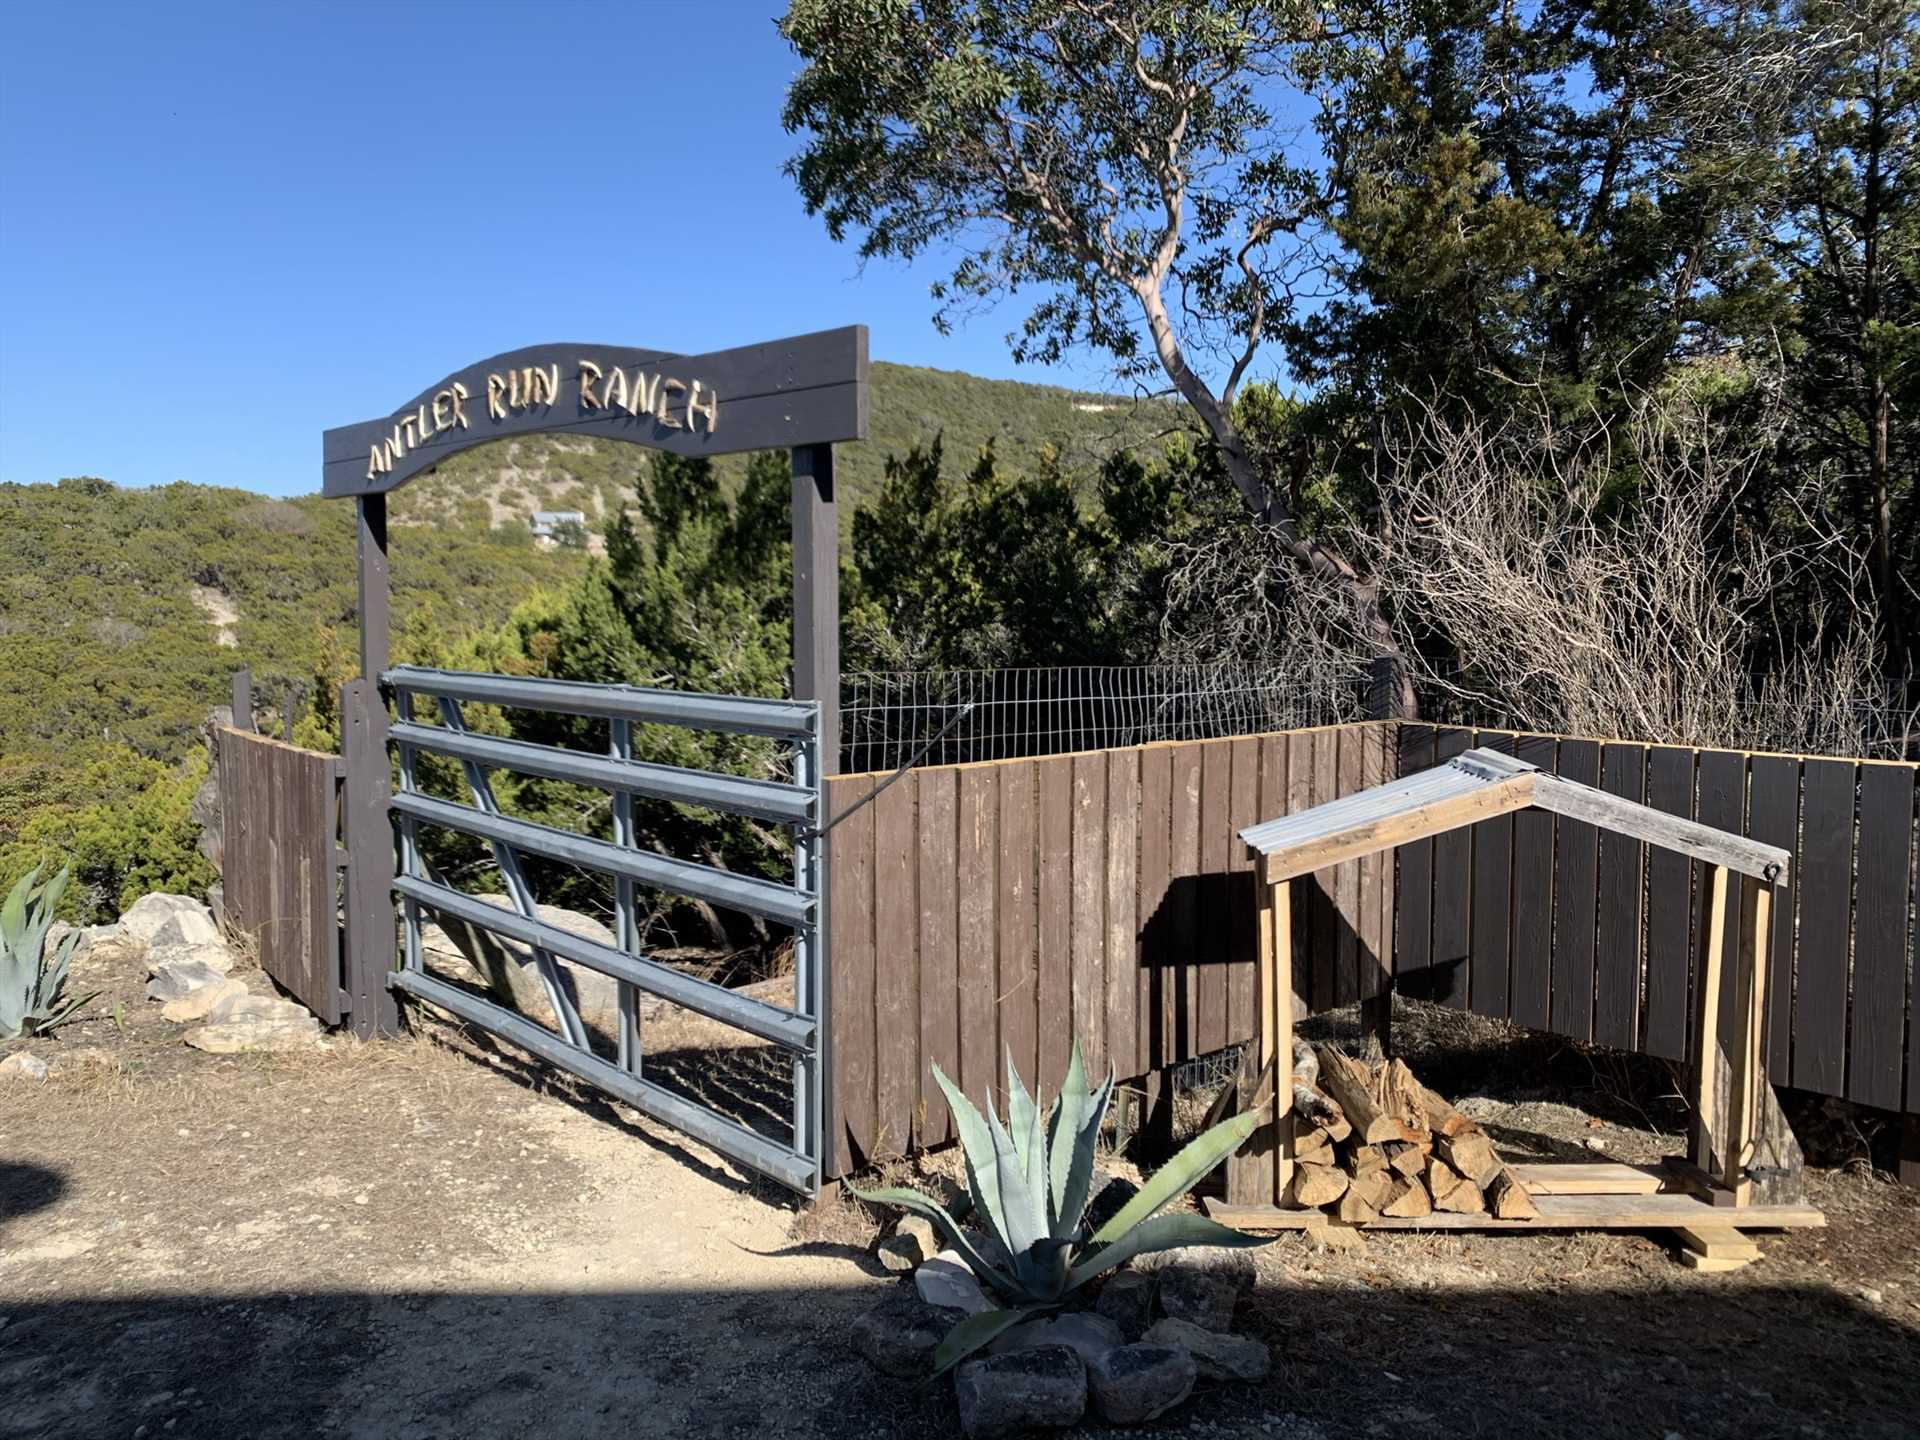 Beyond this gate, you'll find a restful, peaceful, and fun escape from the everyday grind!